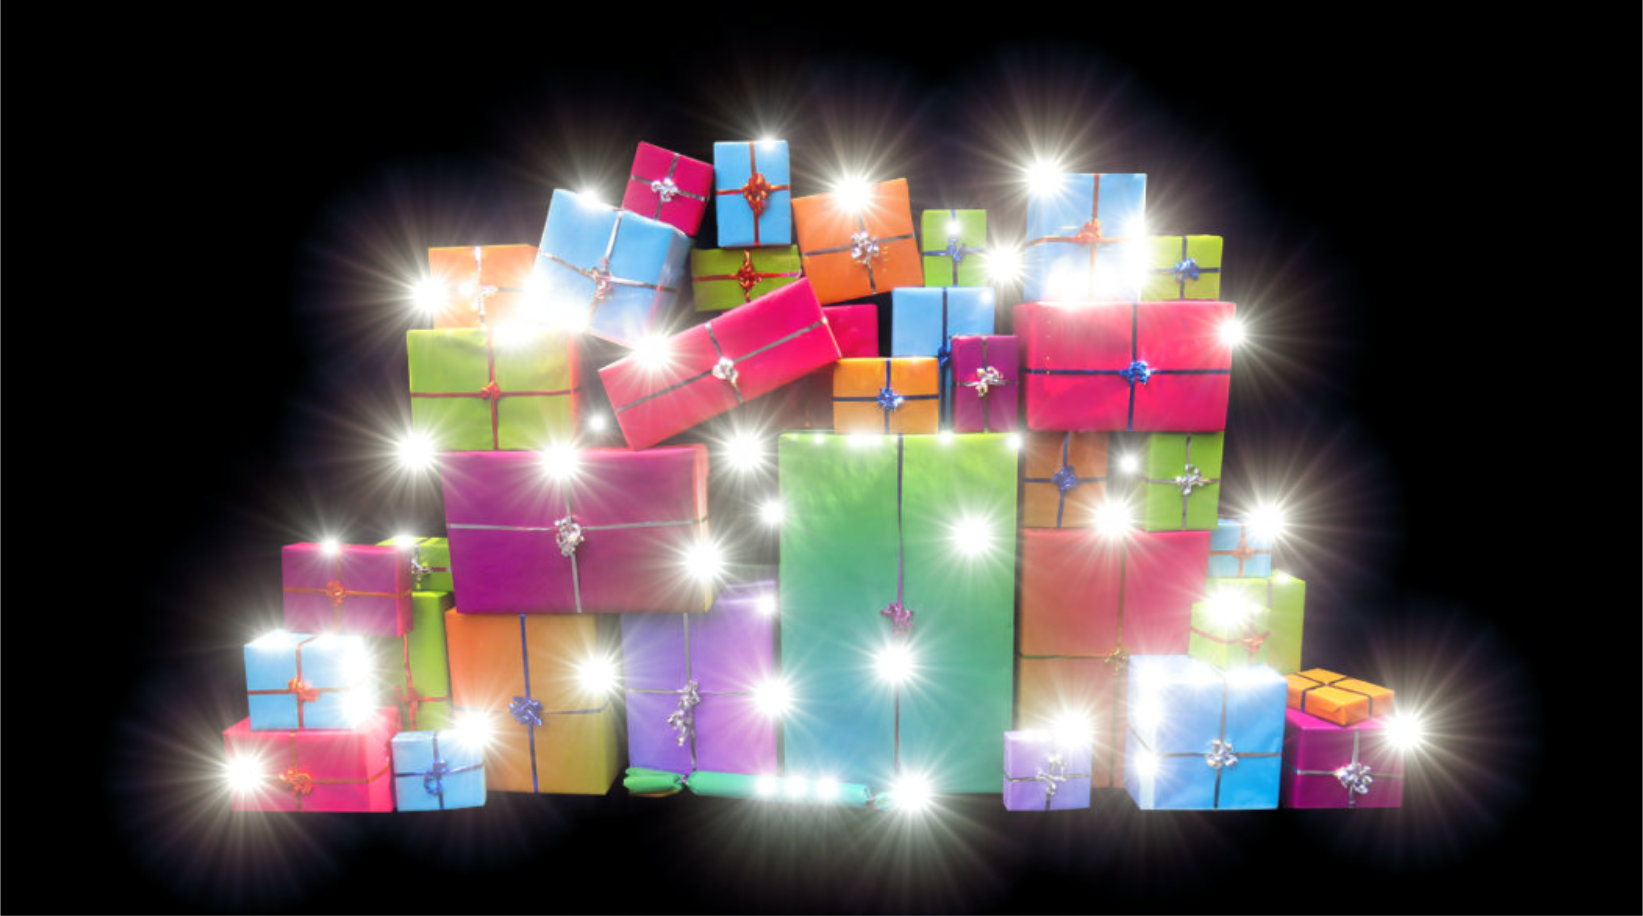 Give yourself the gift that keeps on giving - unlock the true Power of the Positives